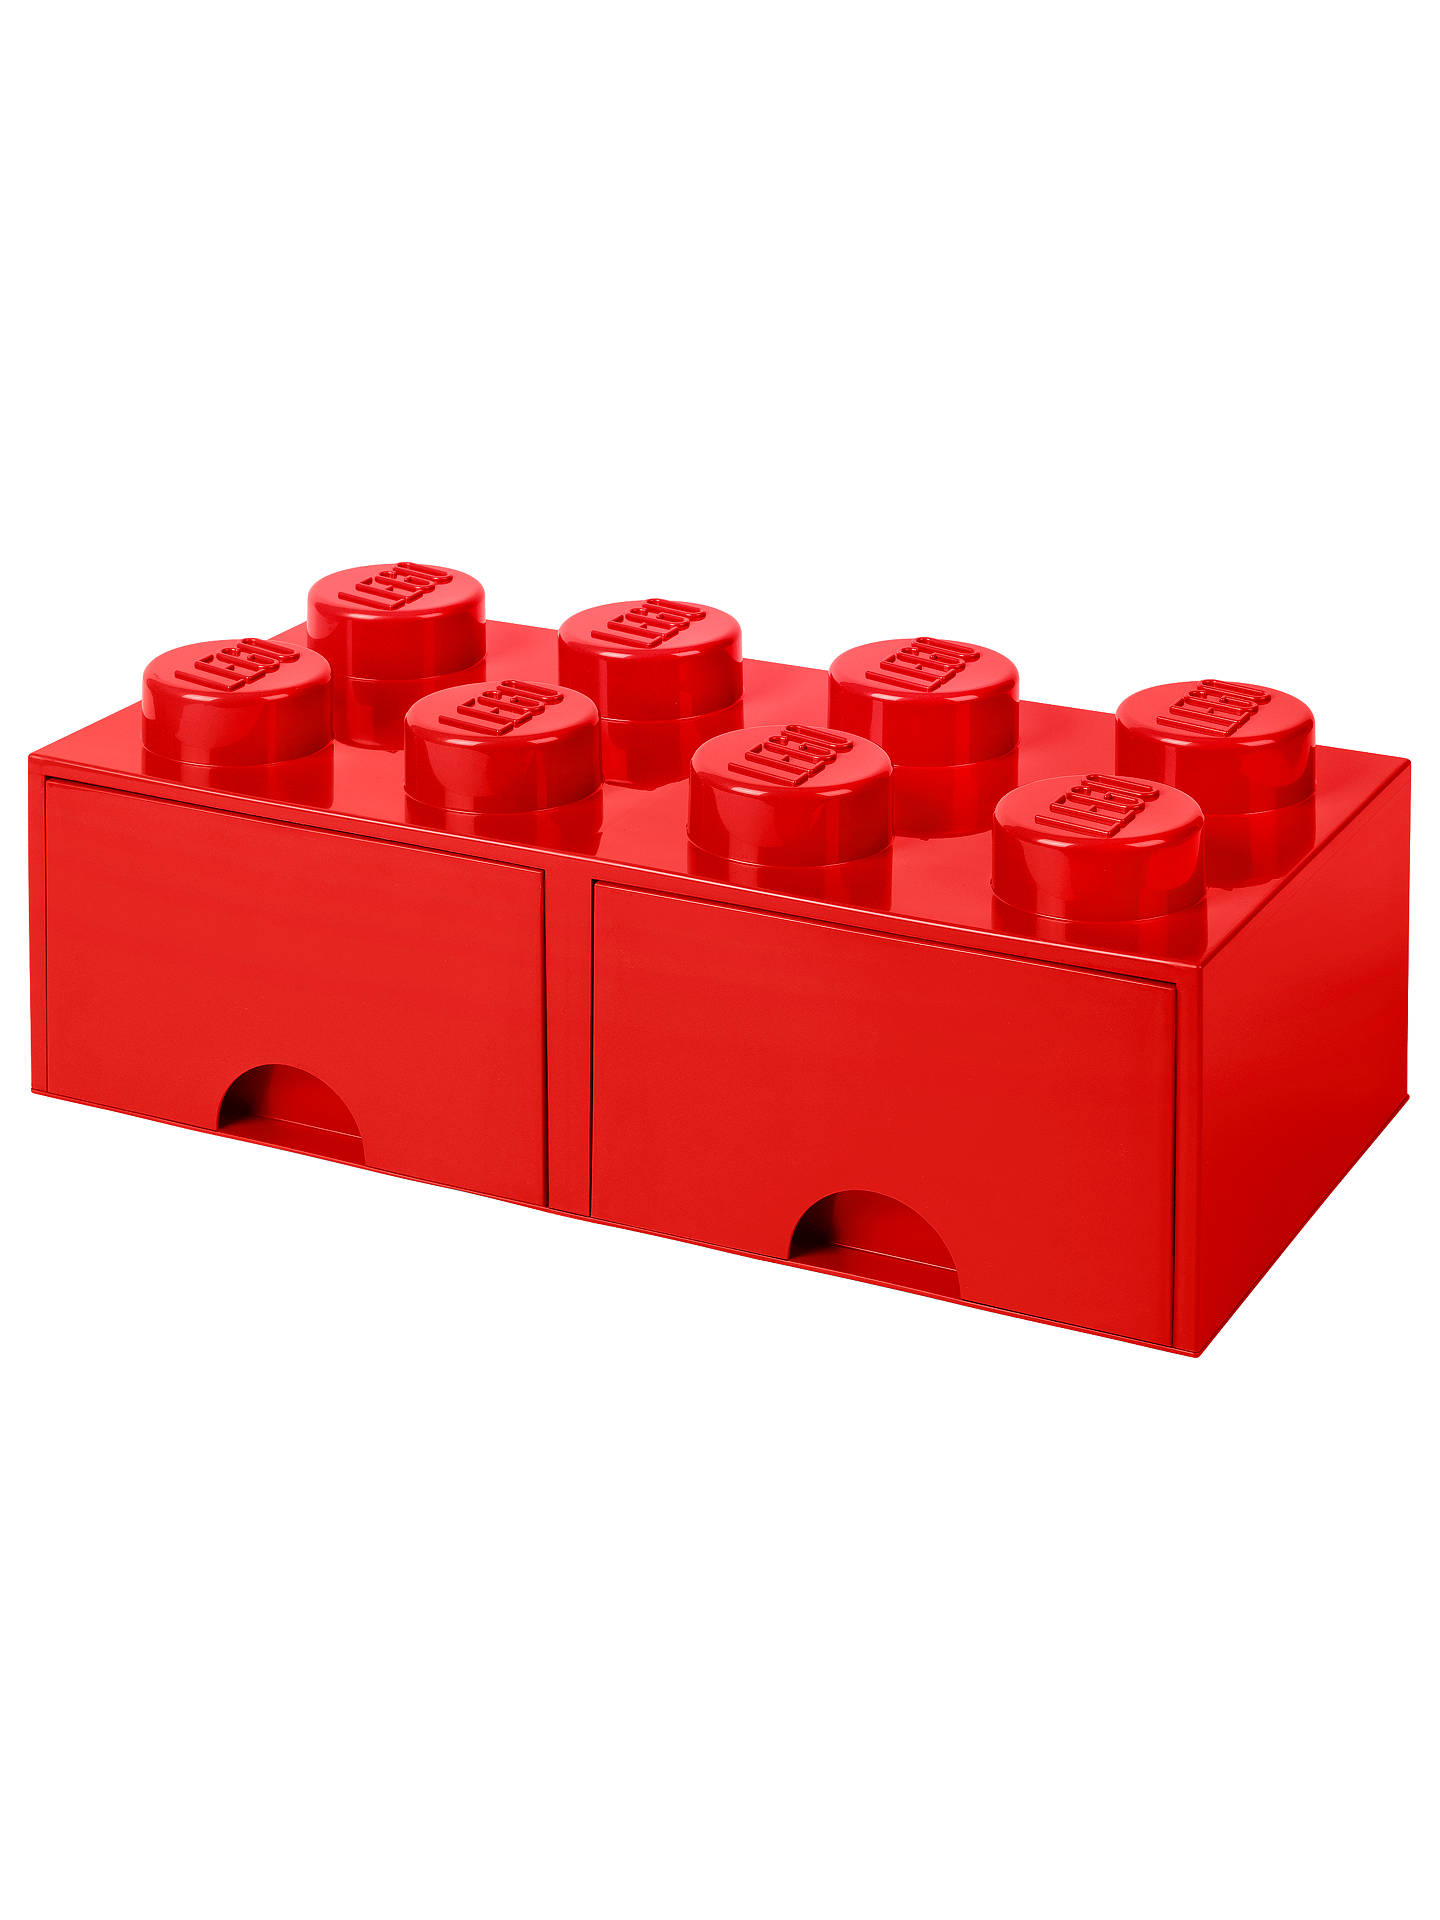 BuyLEGO 8 Stud Storage Drawer, Red Online at johnlewis.com